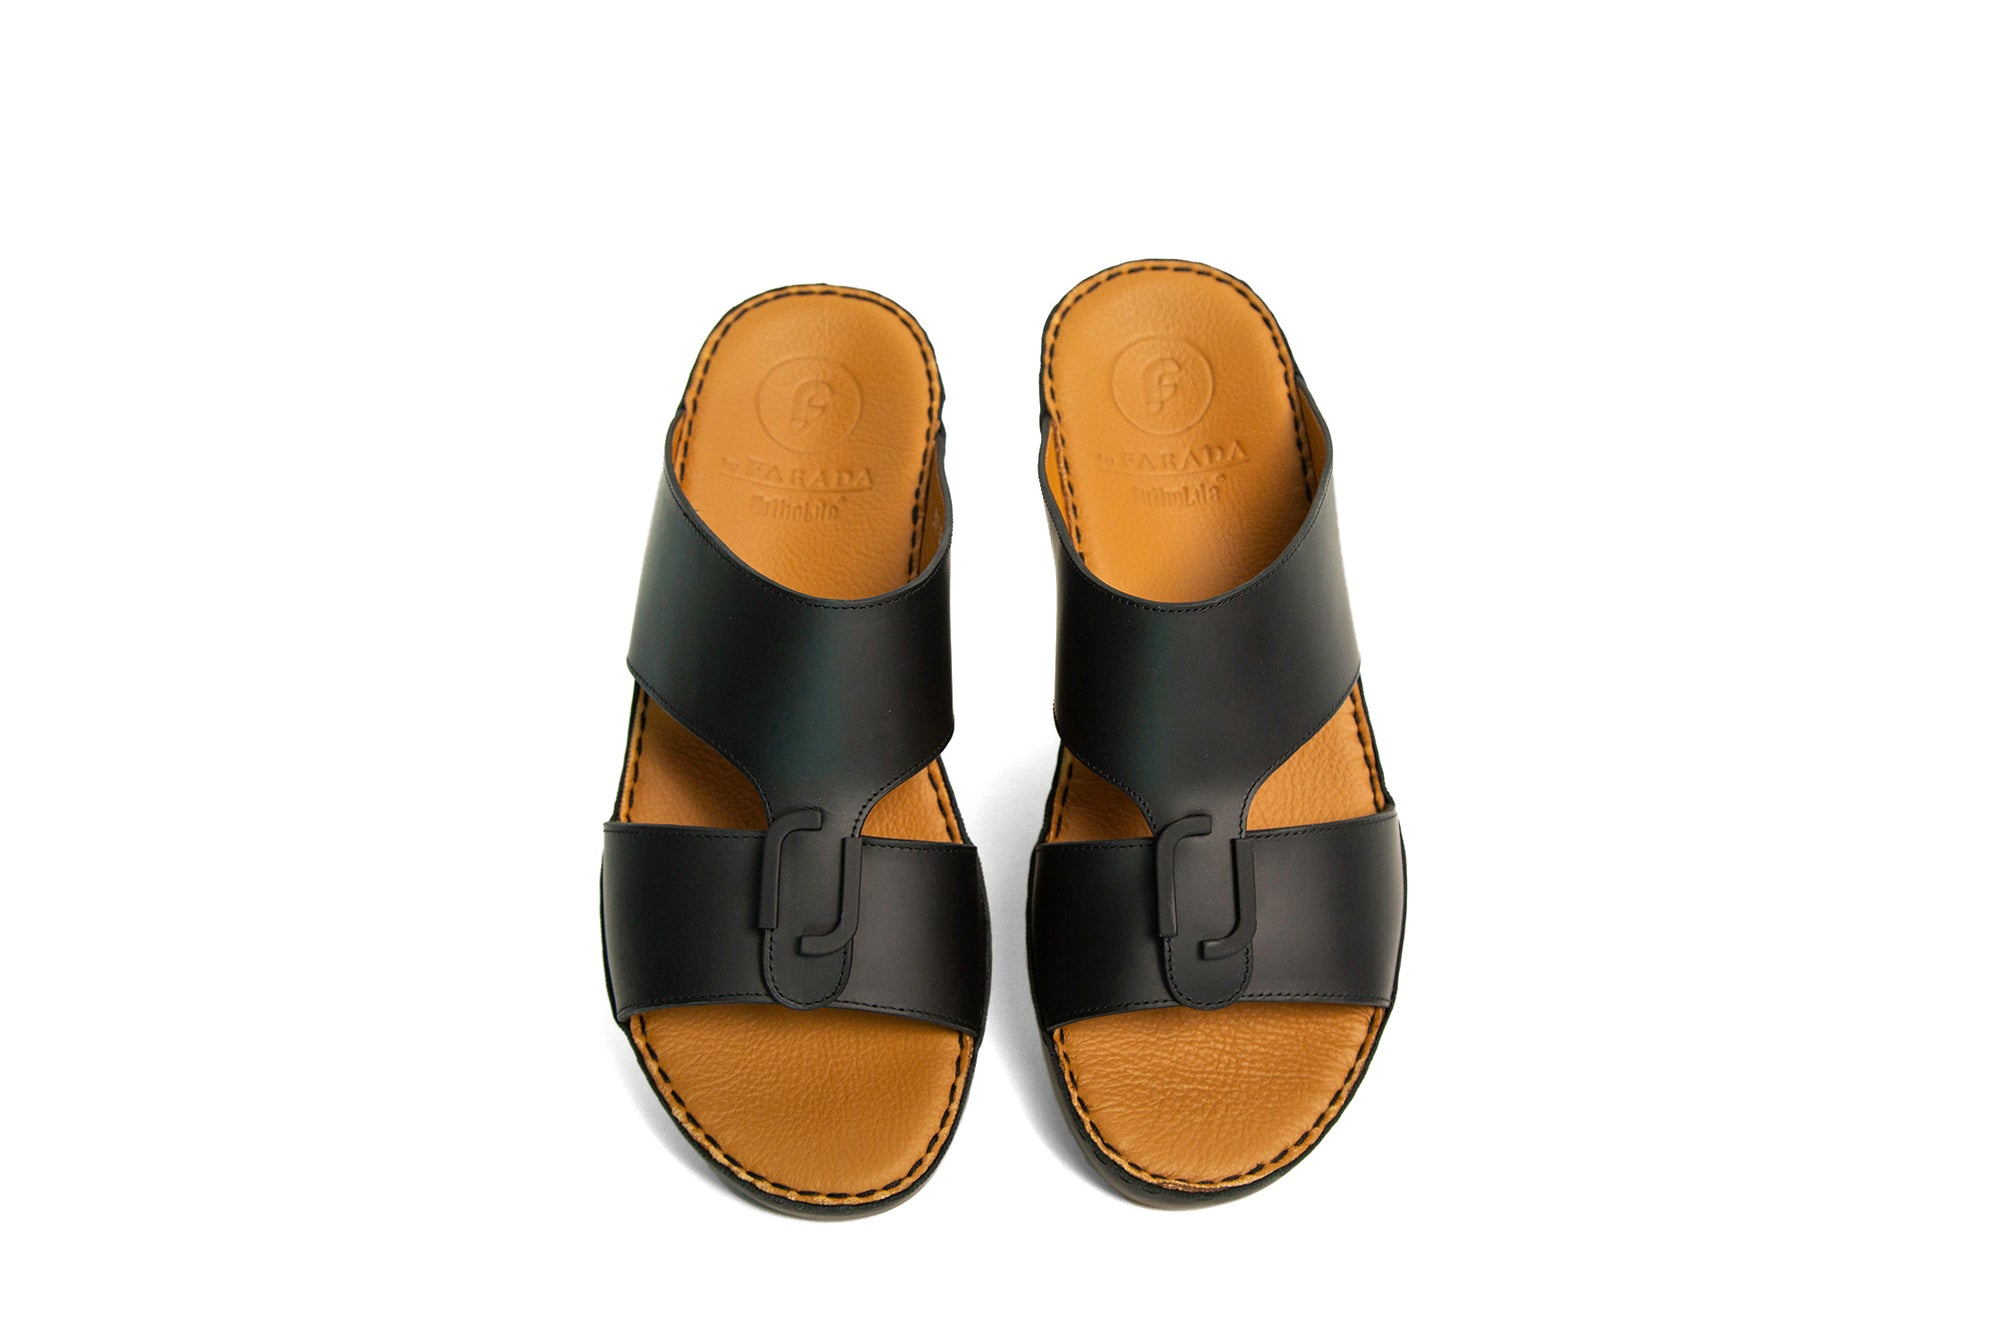 DAVINCI BLACK OXFORD CENTRAL BUCKLE ARABIC SANDAL (317-101)